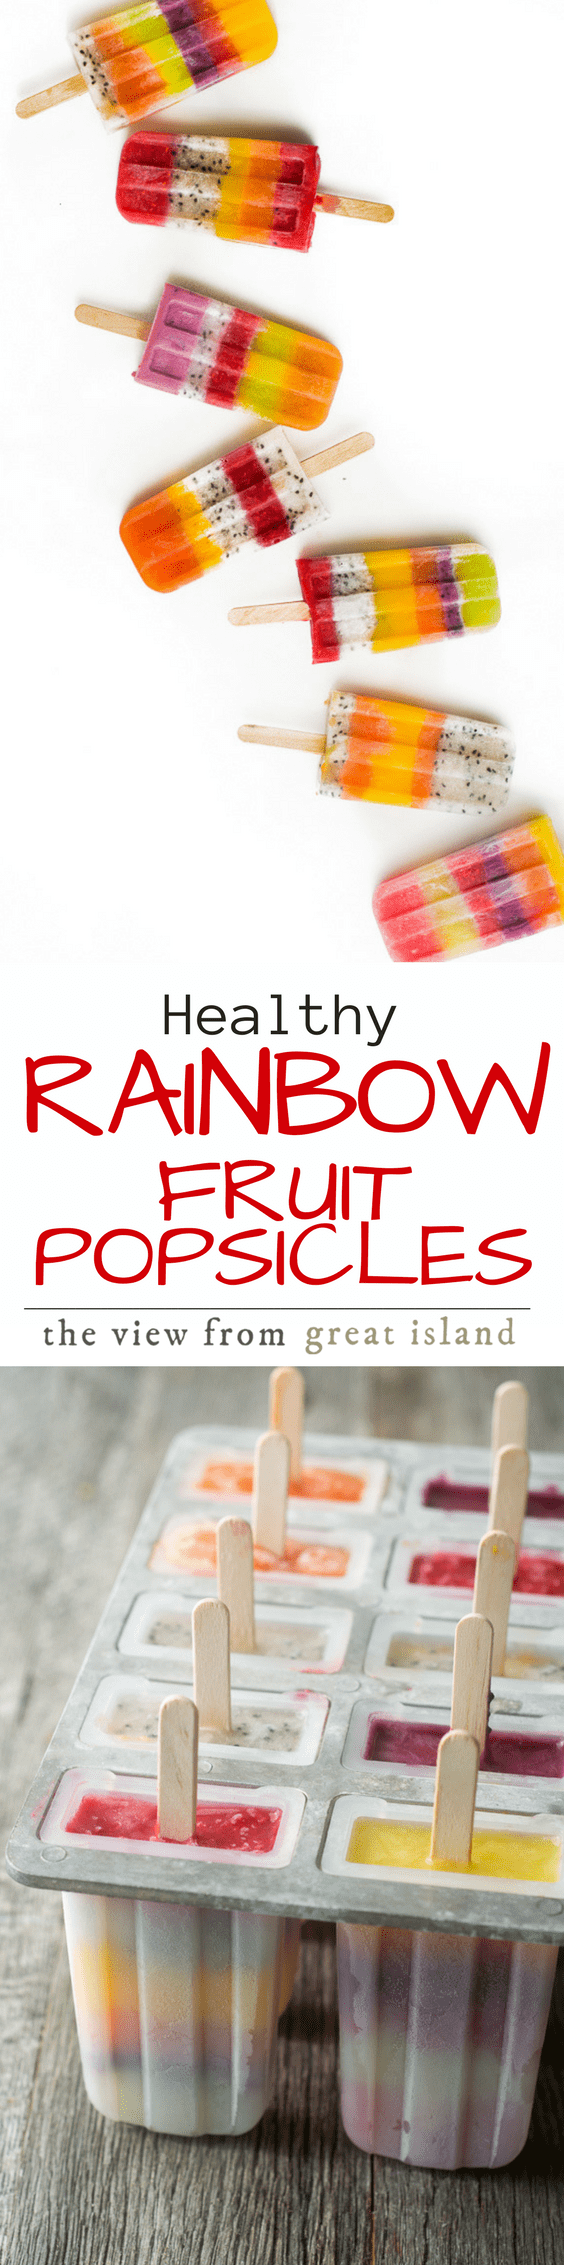 Healthy frozen fruit popsicles are made with exotic fruits like mango, dragon fruit, papaya, golden kiwi and black raspberry. #popsicles #kids #rainbowfruit #fruitpopsicles #nosugarpopsicles #fruitdessert #fruitjuice #fruitpuree